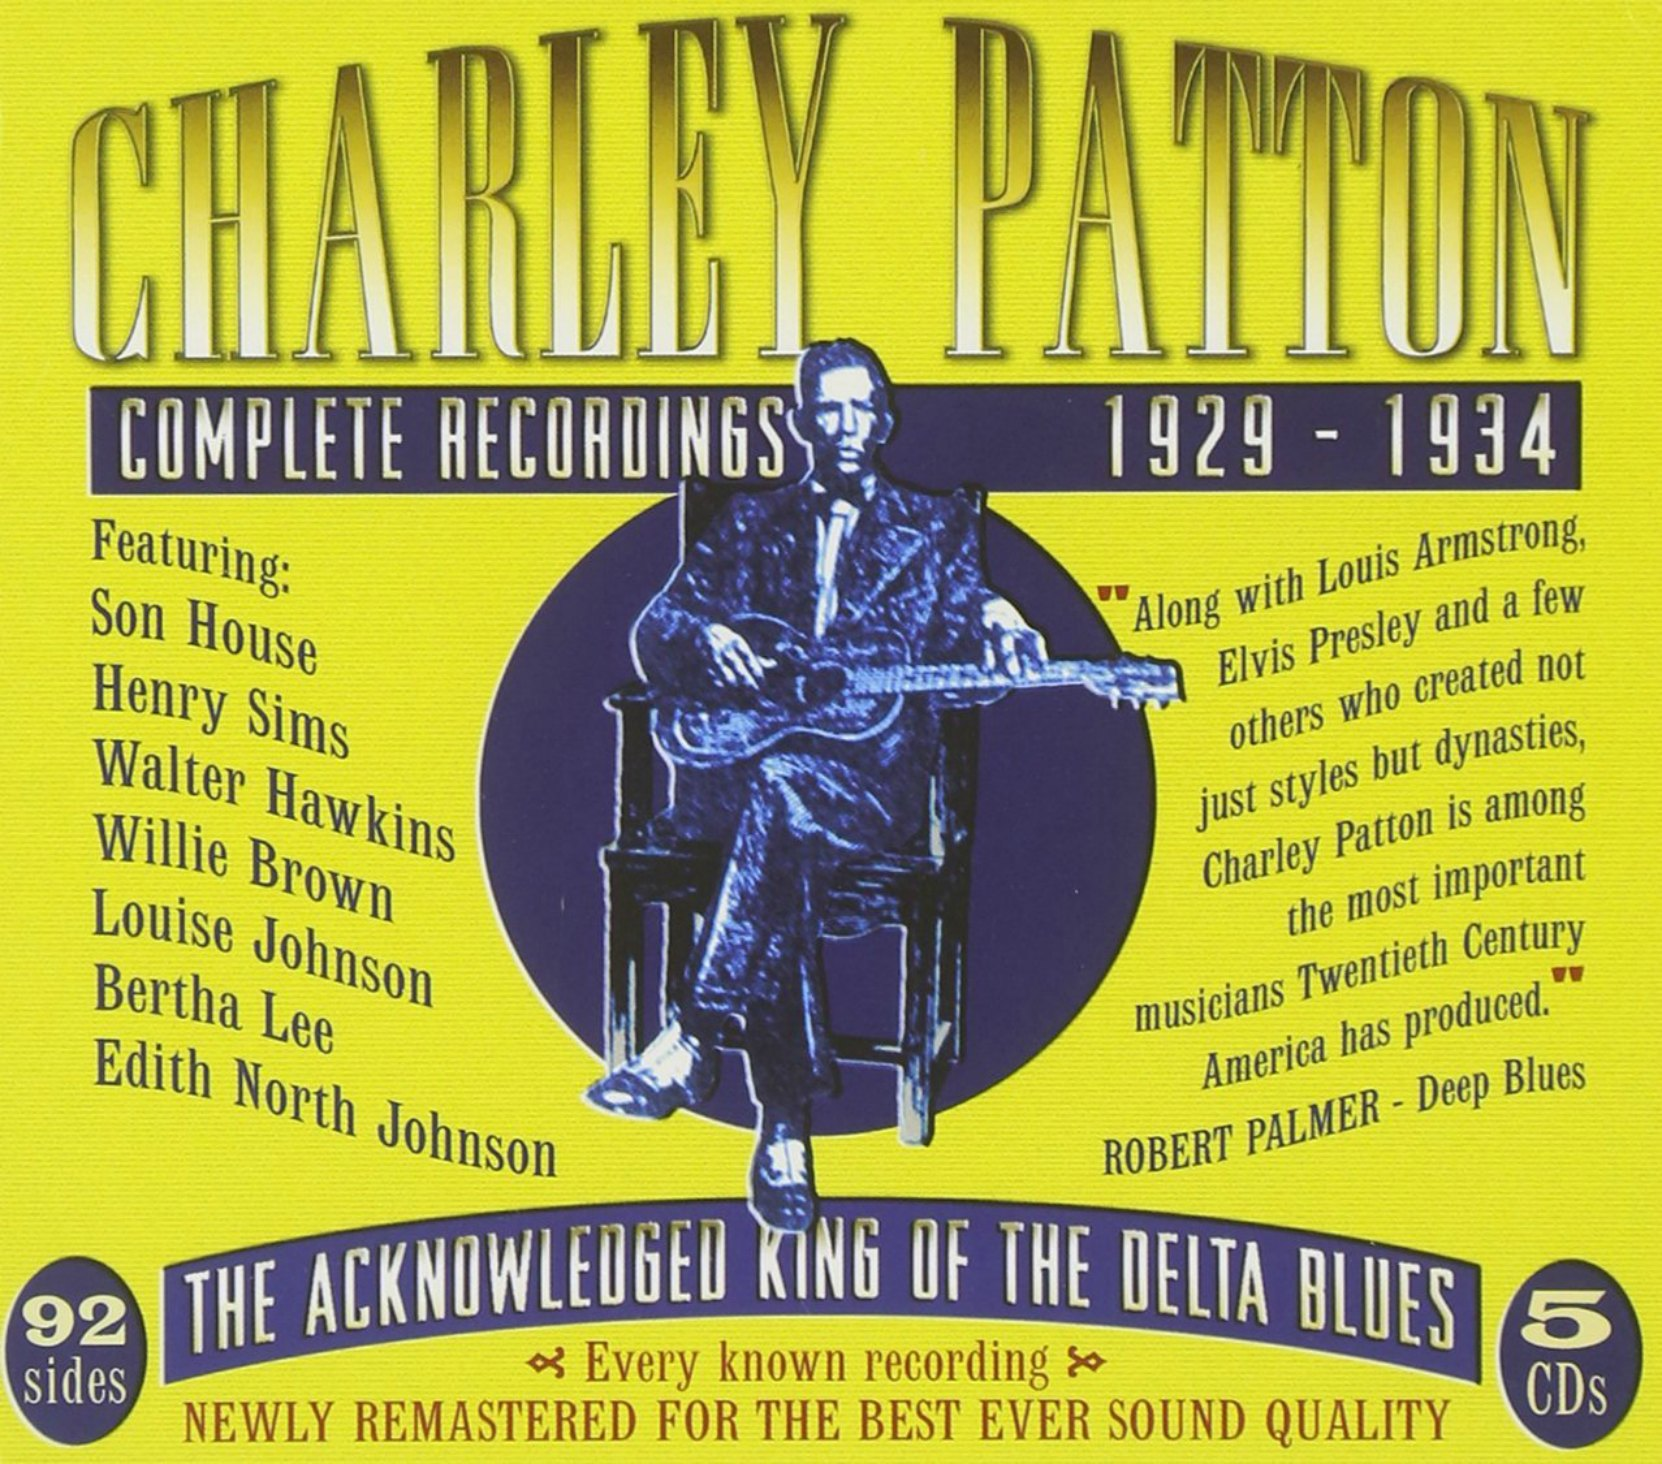 CD cover, Charley Patton Complete Recordings 1929-1934, a 5 CD box set on JSP Records